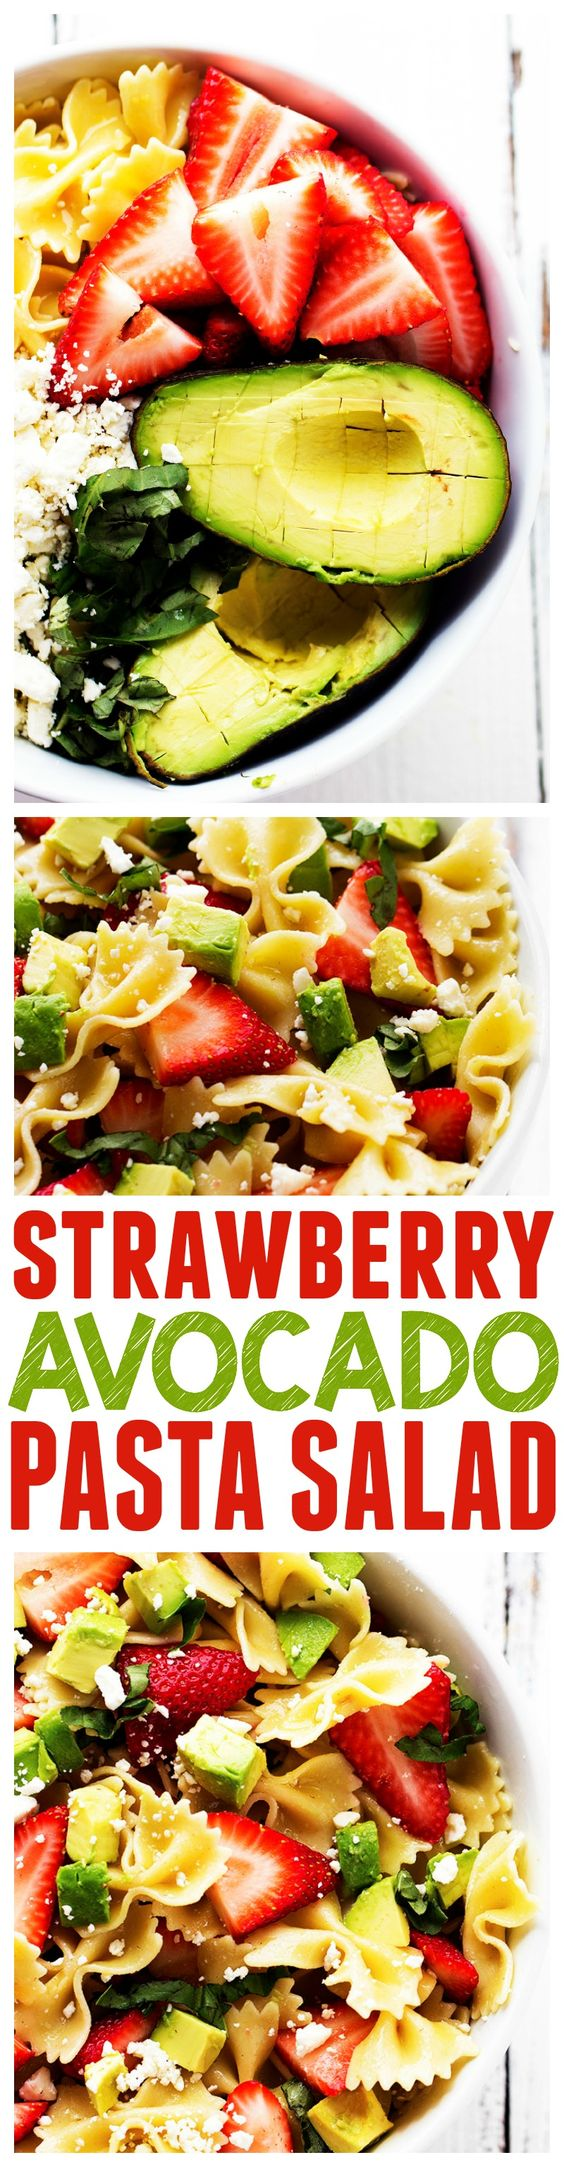 Strawberry Avocado Pasta Salad Recipe via The Recipe Critic - This Strawberry Avocado Pasta Salads is one unforgettable salad!!! Strawberries, Avocados, Basil and Feta Cheese come together to create the BEST pasta salad!! Easy Pasta Salad Recipes - The BEST Yummy Barbecue Side Dishes, Potluck Favorites and Summer Dinner Party Crowd Pleasers #pastasaladrecipes #pastasalads #pastasalad #easypastasalad #potluckrecipes #potluck #partyfood #4thofJuly #picnicfood #sidedishrecipes #easysidedishes #cookoutfood #barbecuefood #blockparty